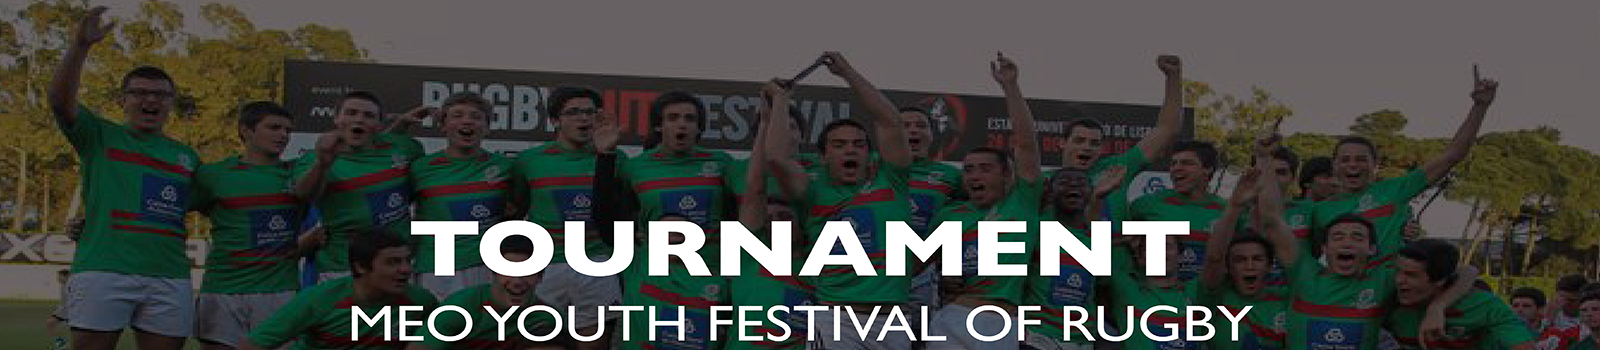 meo_youth_festival_of_rugby